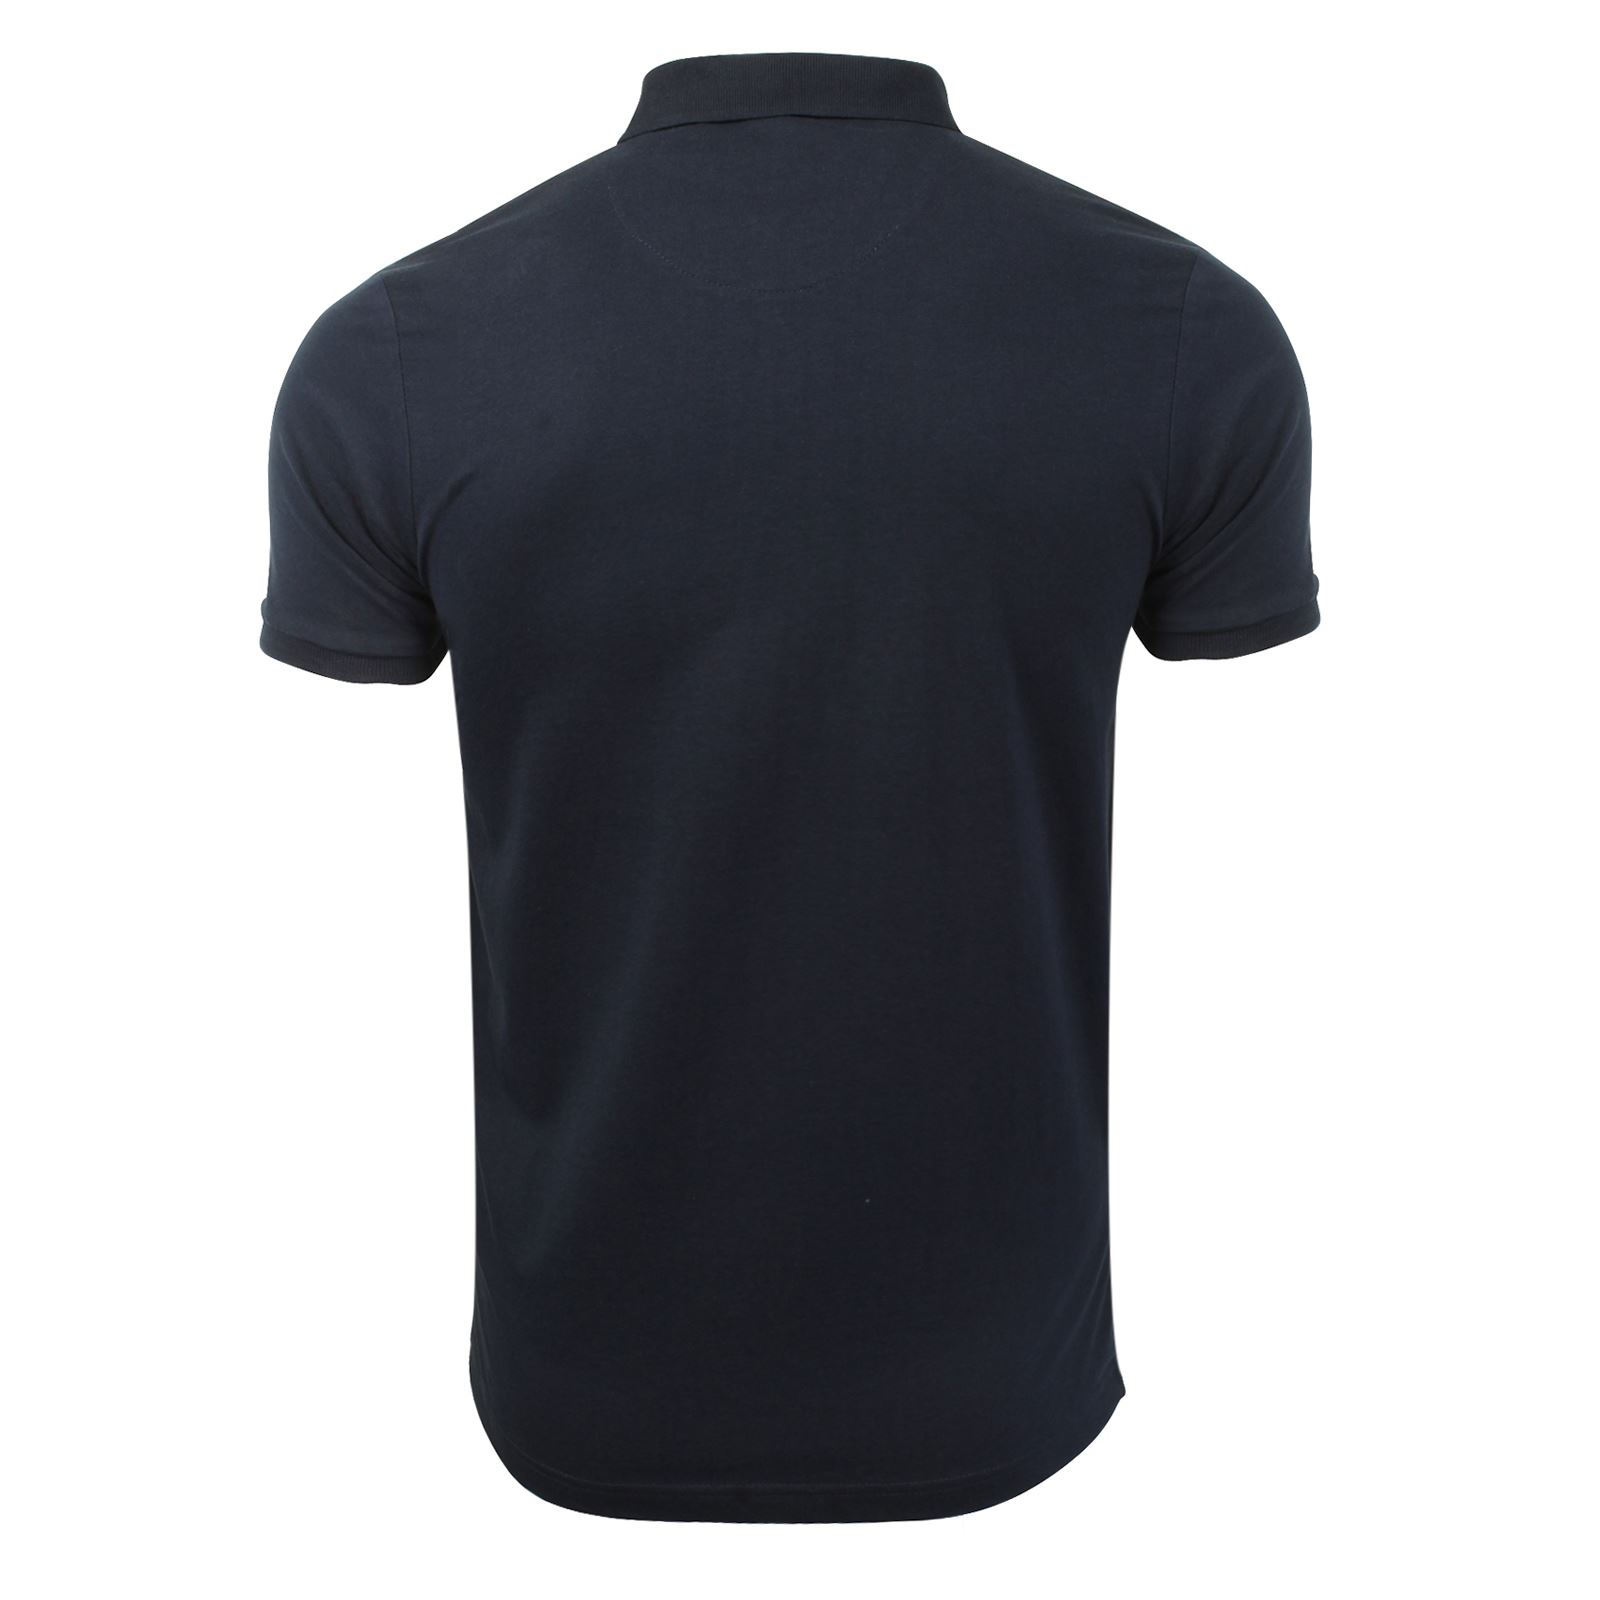 Brave-Soul-Julius-Mens-Polo-T-Shirt-Cotton-Collared-Short-Sleeve-Casual-Top miniature 18